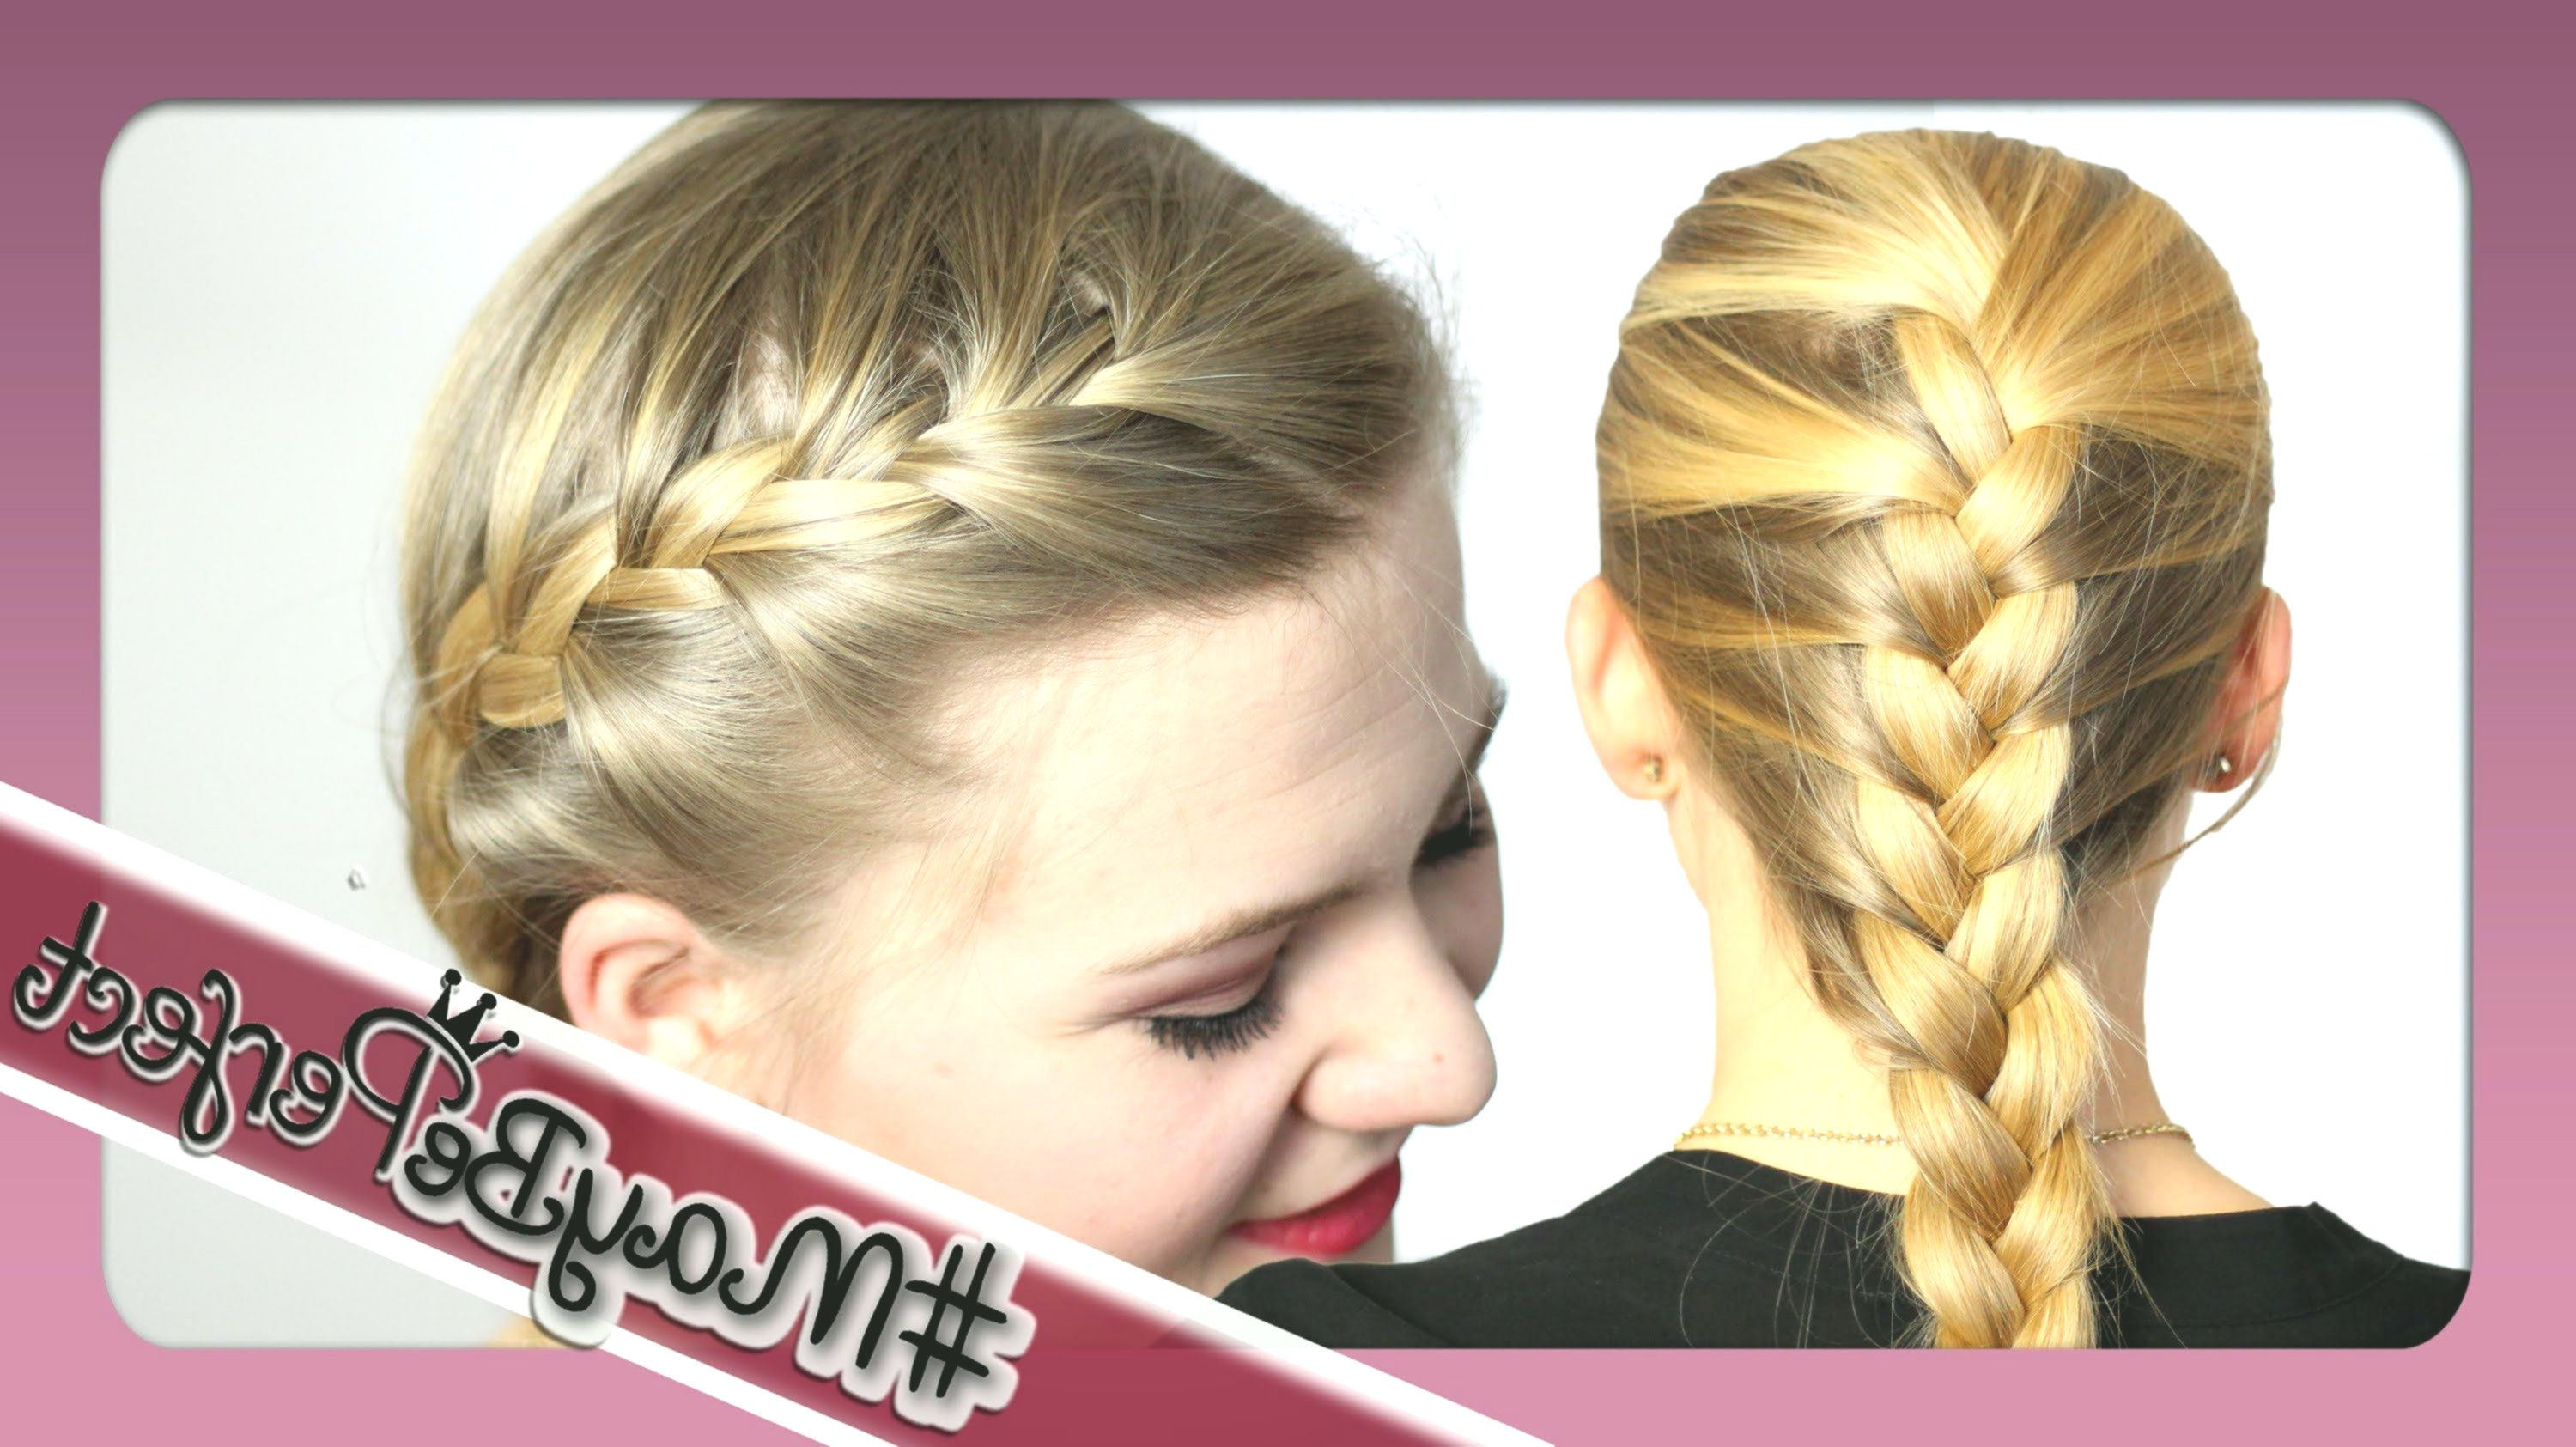 top french hairstyles decoration-inspiring French hairstyles decoration